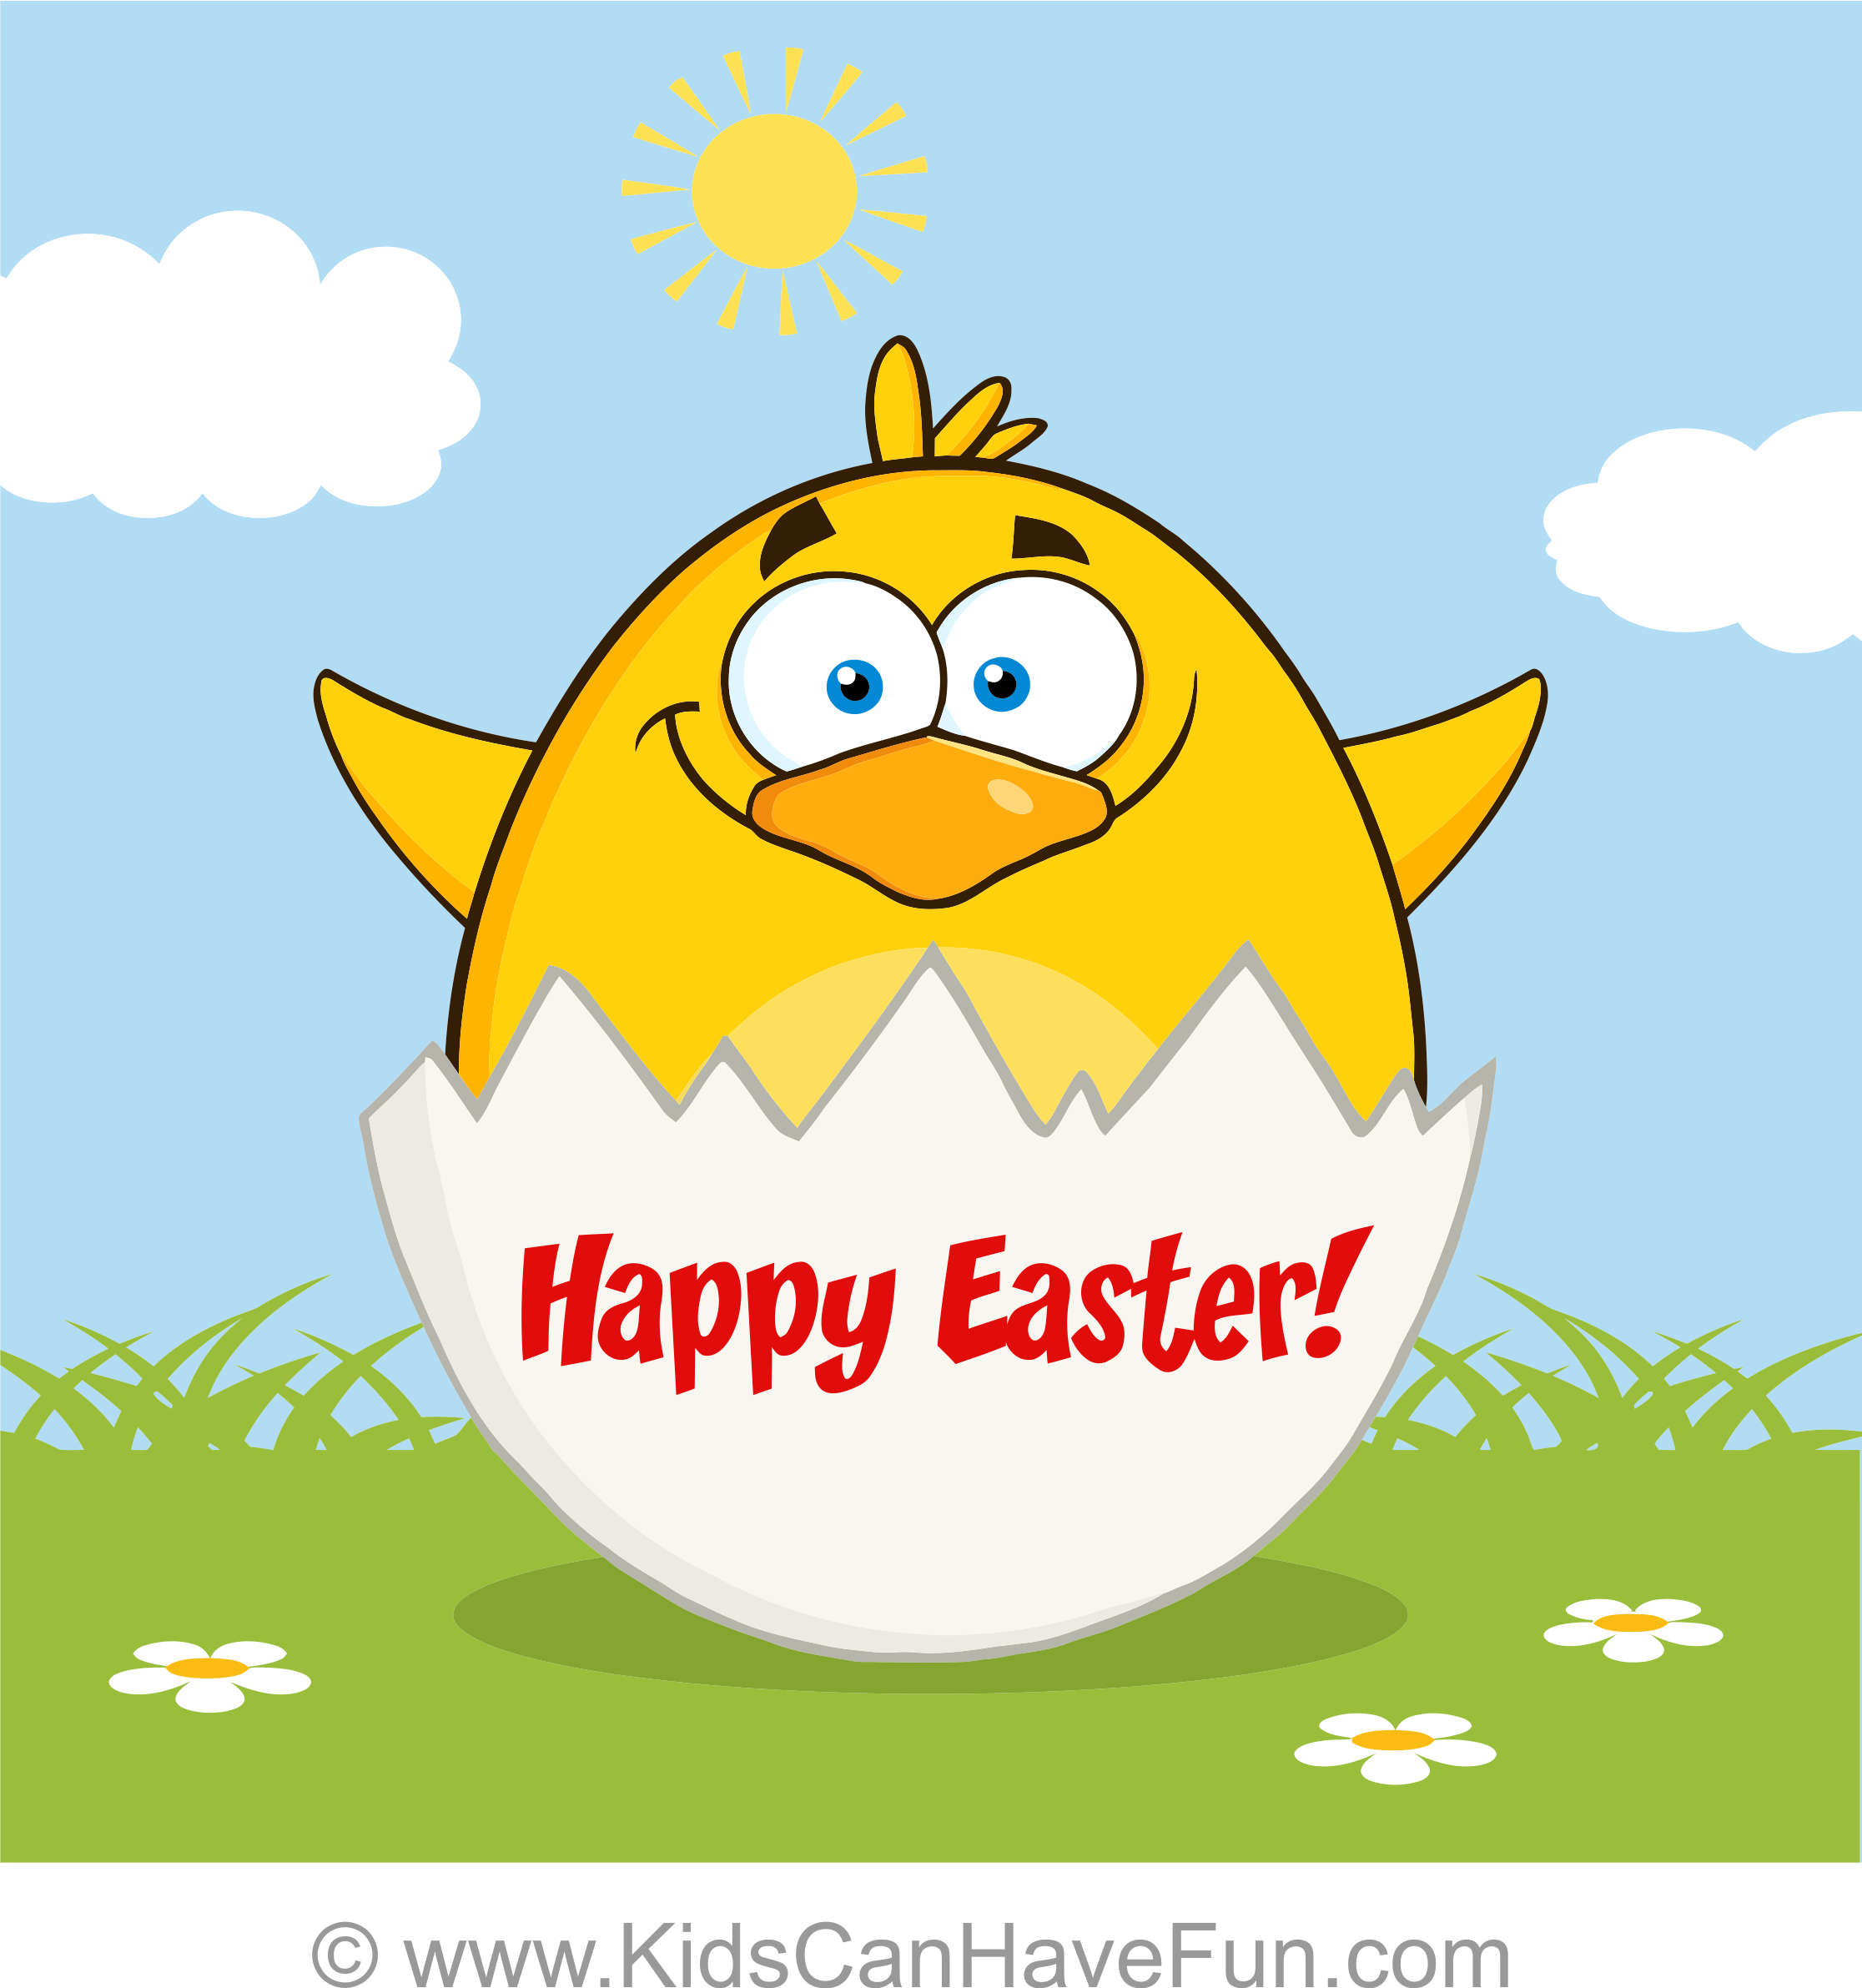 Free Happy Easter Yellow Chick Greeting Card 1 Blank Inside Http